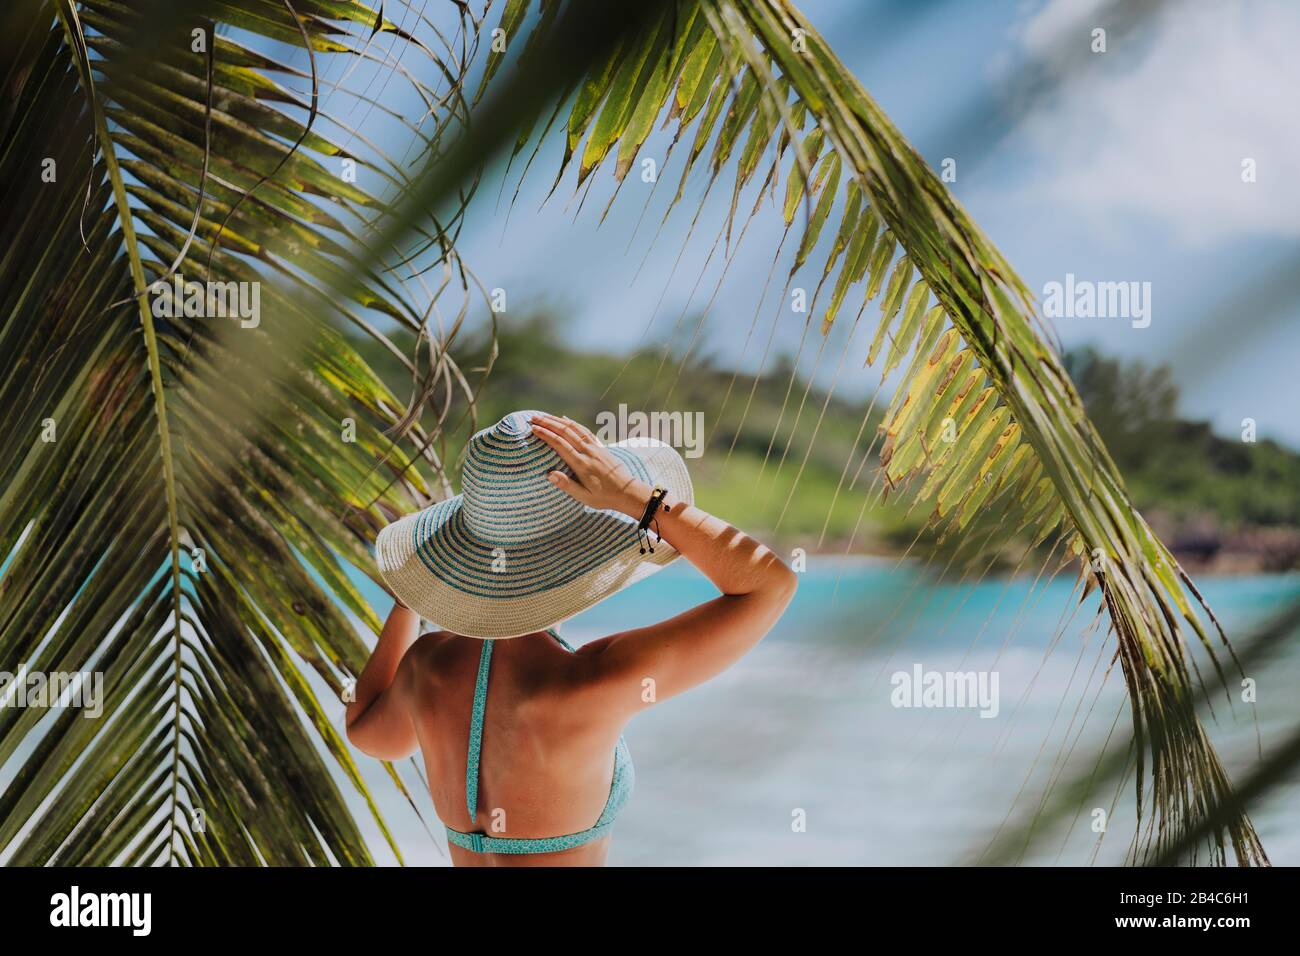 Woman On The Beach In The Palm Trees Shadow Wearing Blue Hat Luxury Paradise Recreation Vacation Concept Stock Photo Alamy